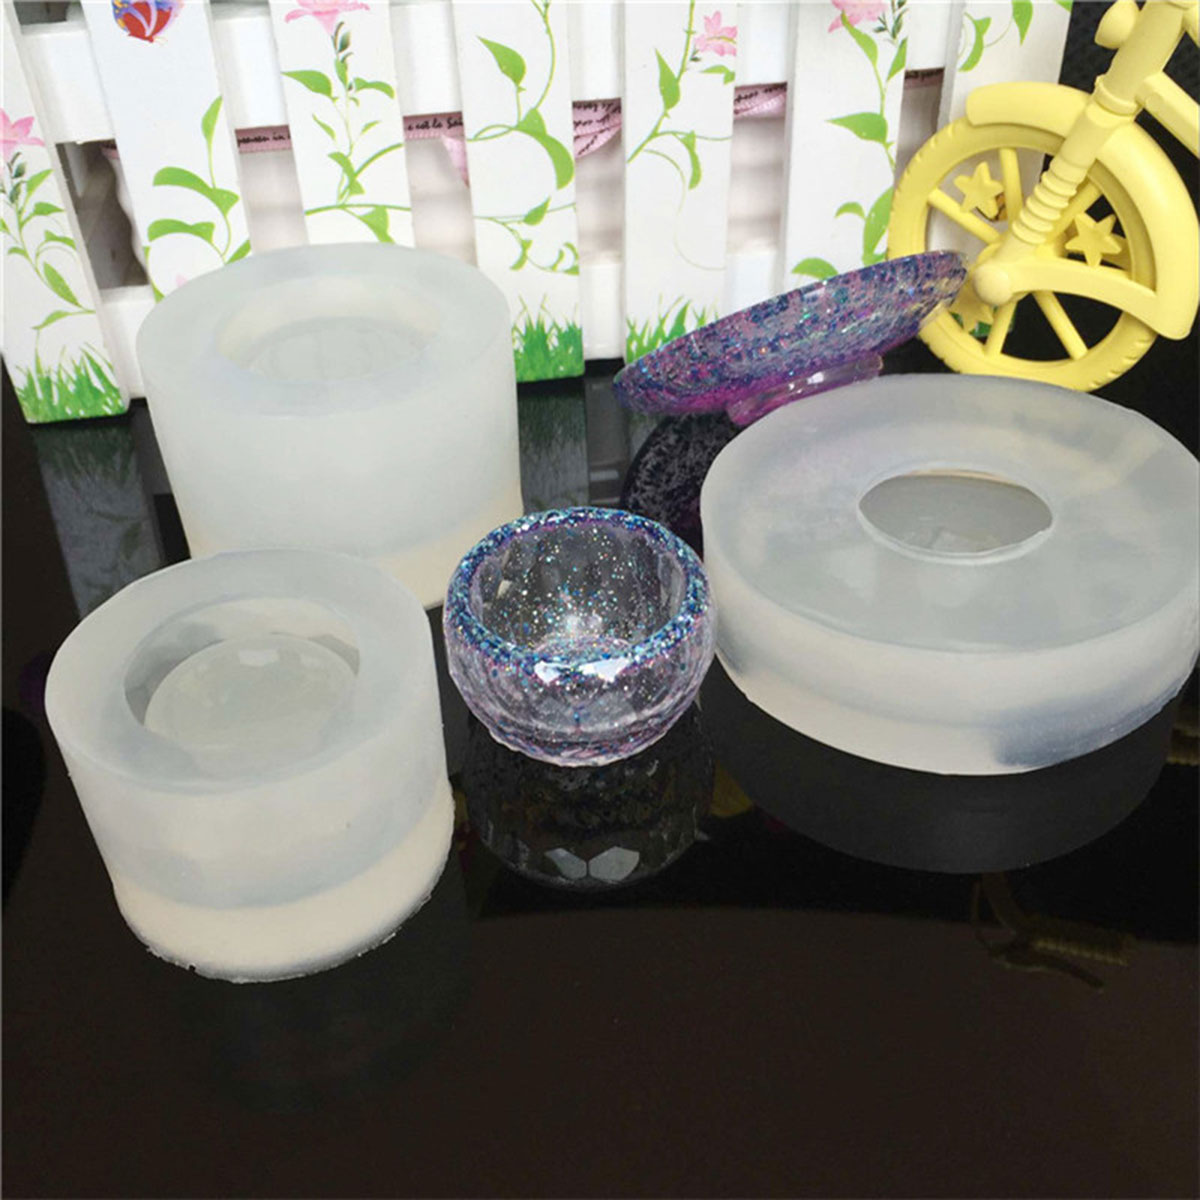 3pcs Clear Silicone DIY Tea Bowl Shape Mold For Epoxy Resin Jewelry Craft